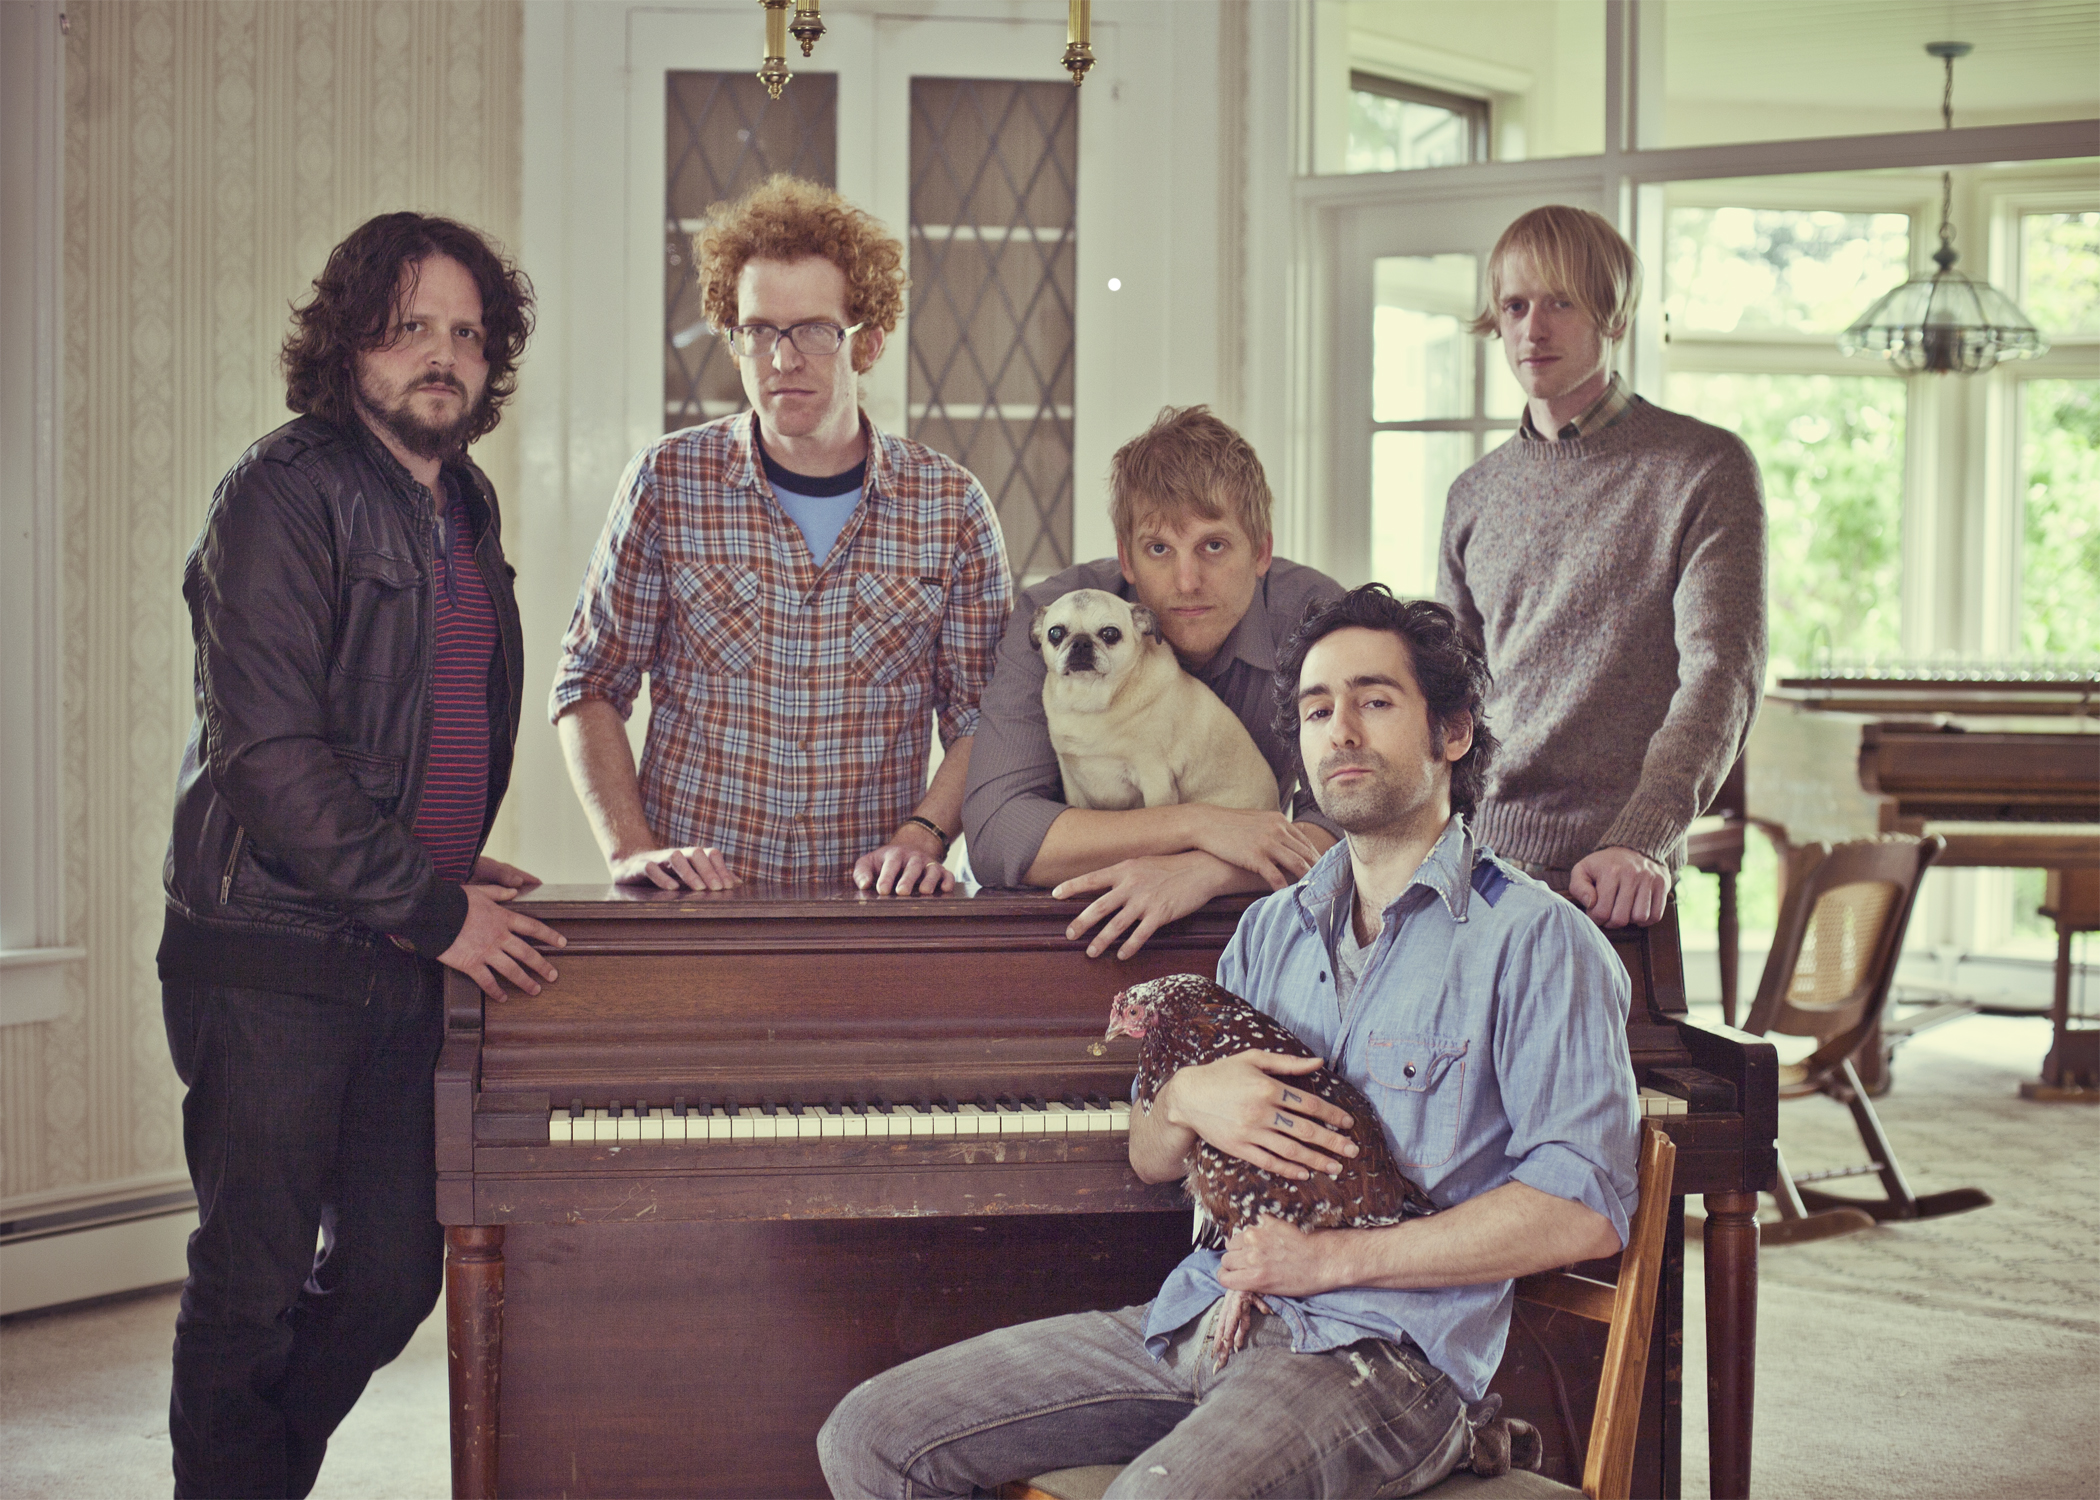 Letting it all hang out: Gig brings eclectic band Blitzen Trapper to Moscow